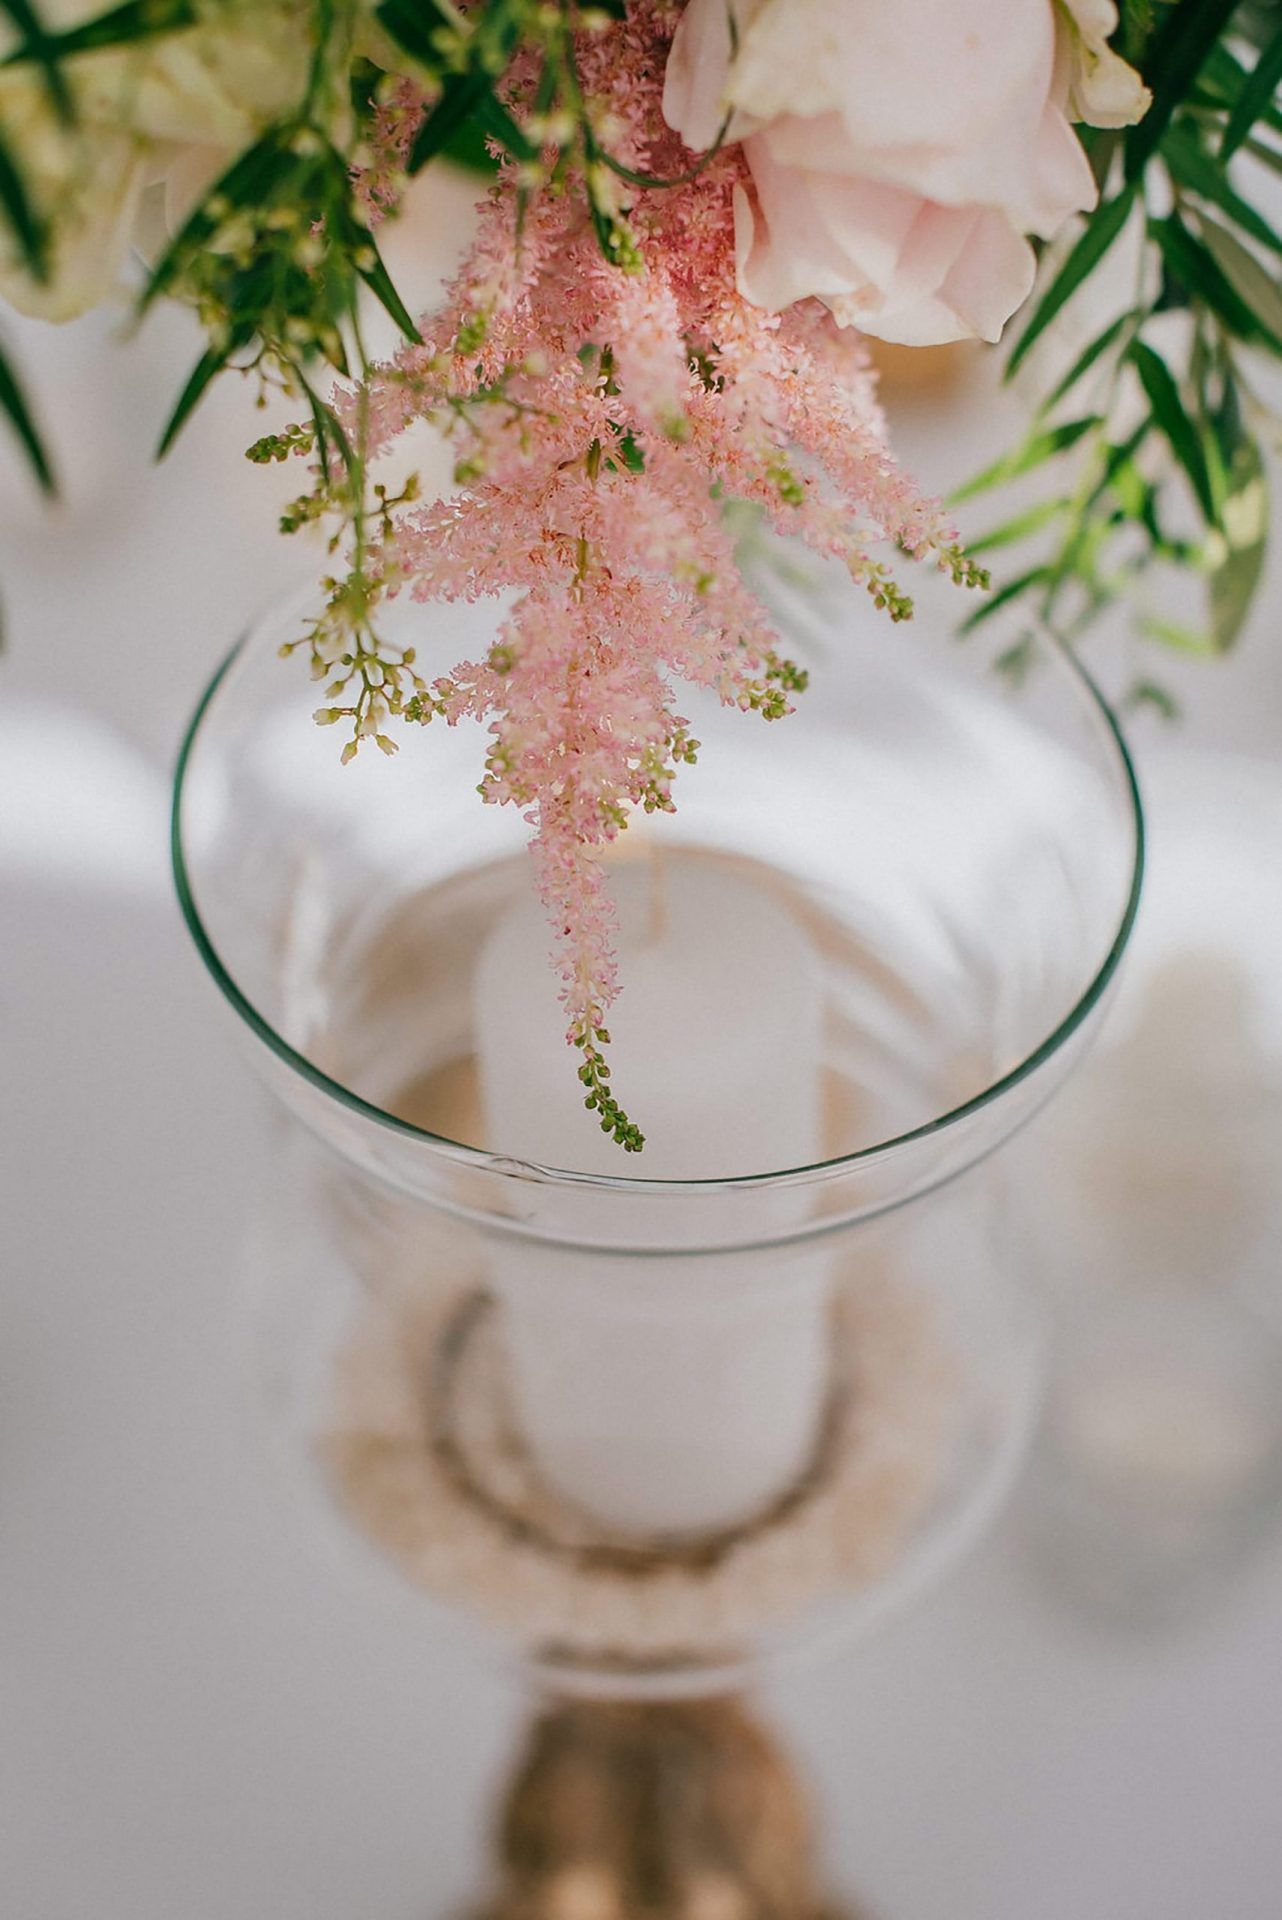 Ilaria e Giovanni, al fresco wedding, astilbe flower detail